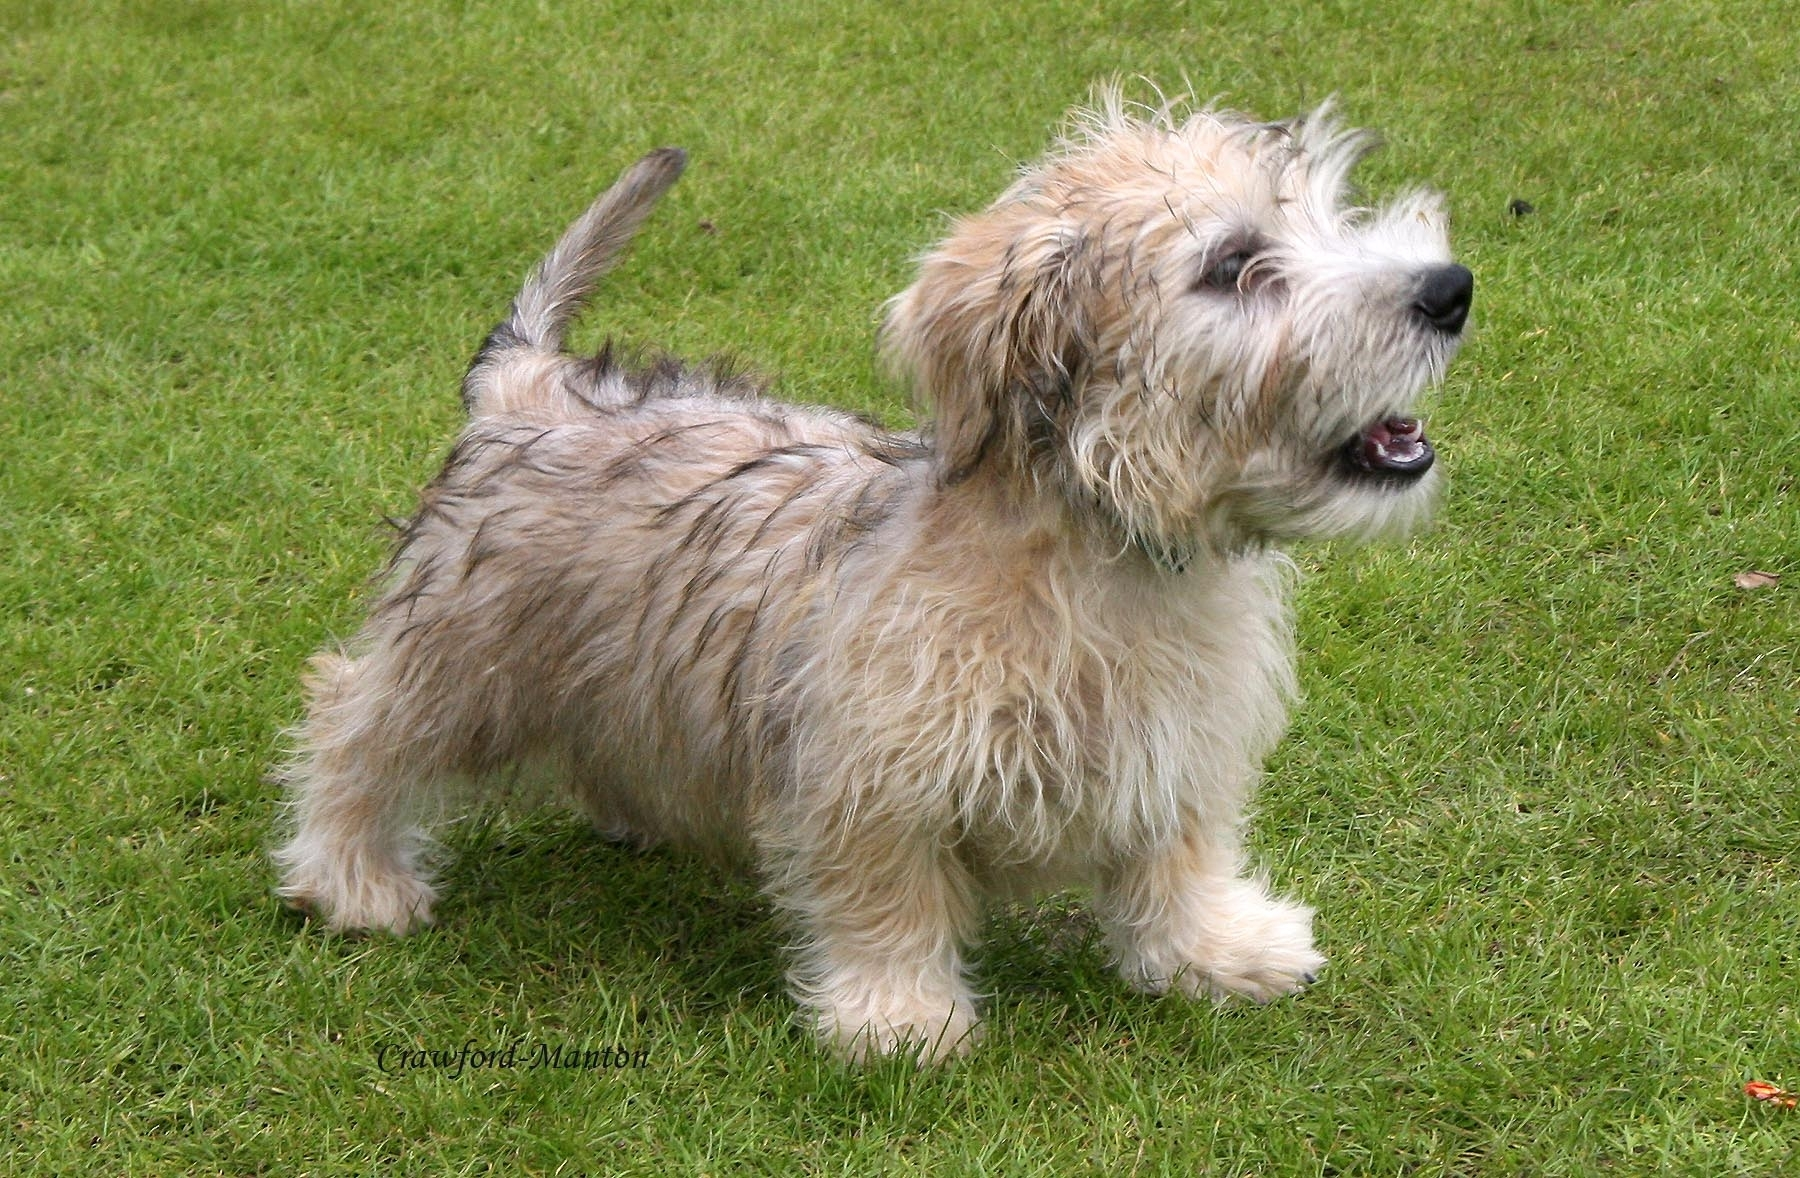 Glen of imaal terrier clipart.